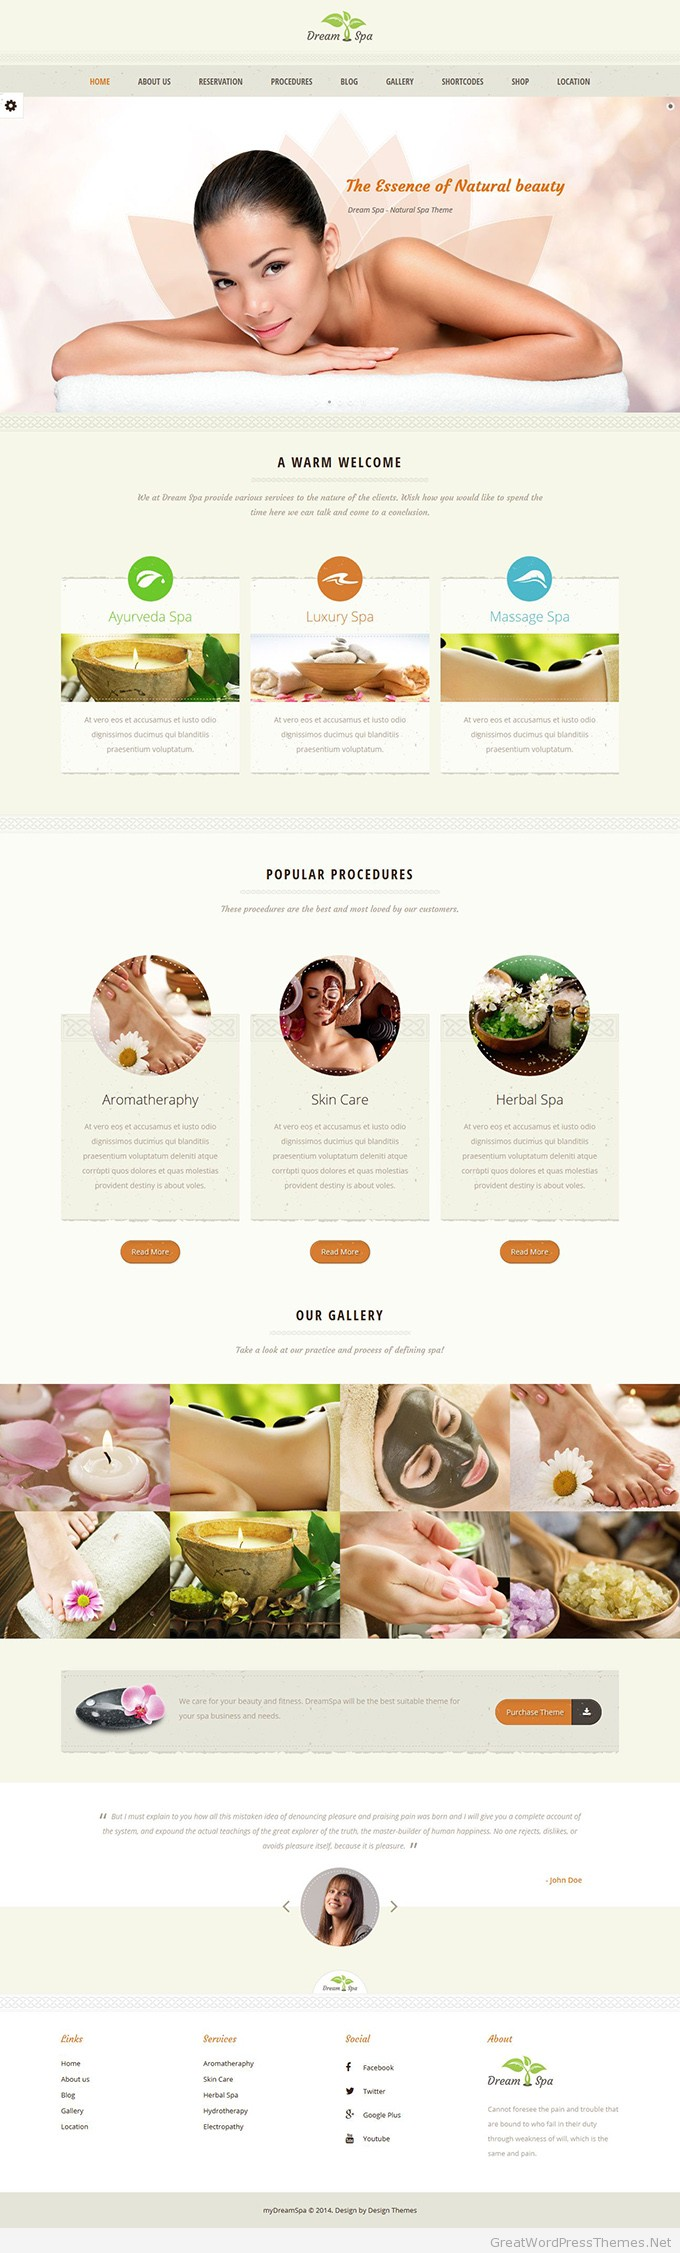 Dream-Spa-WordPress-theme